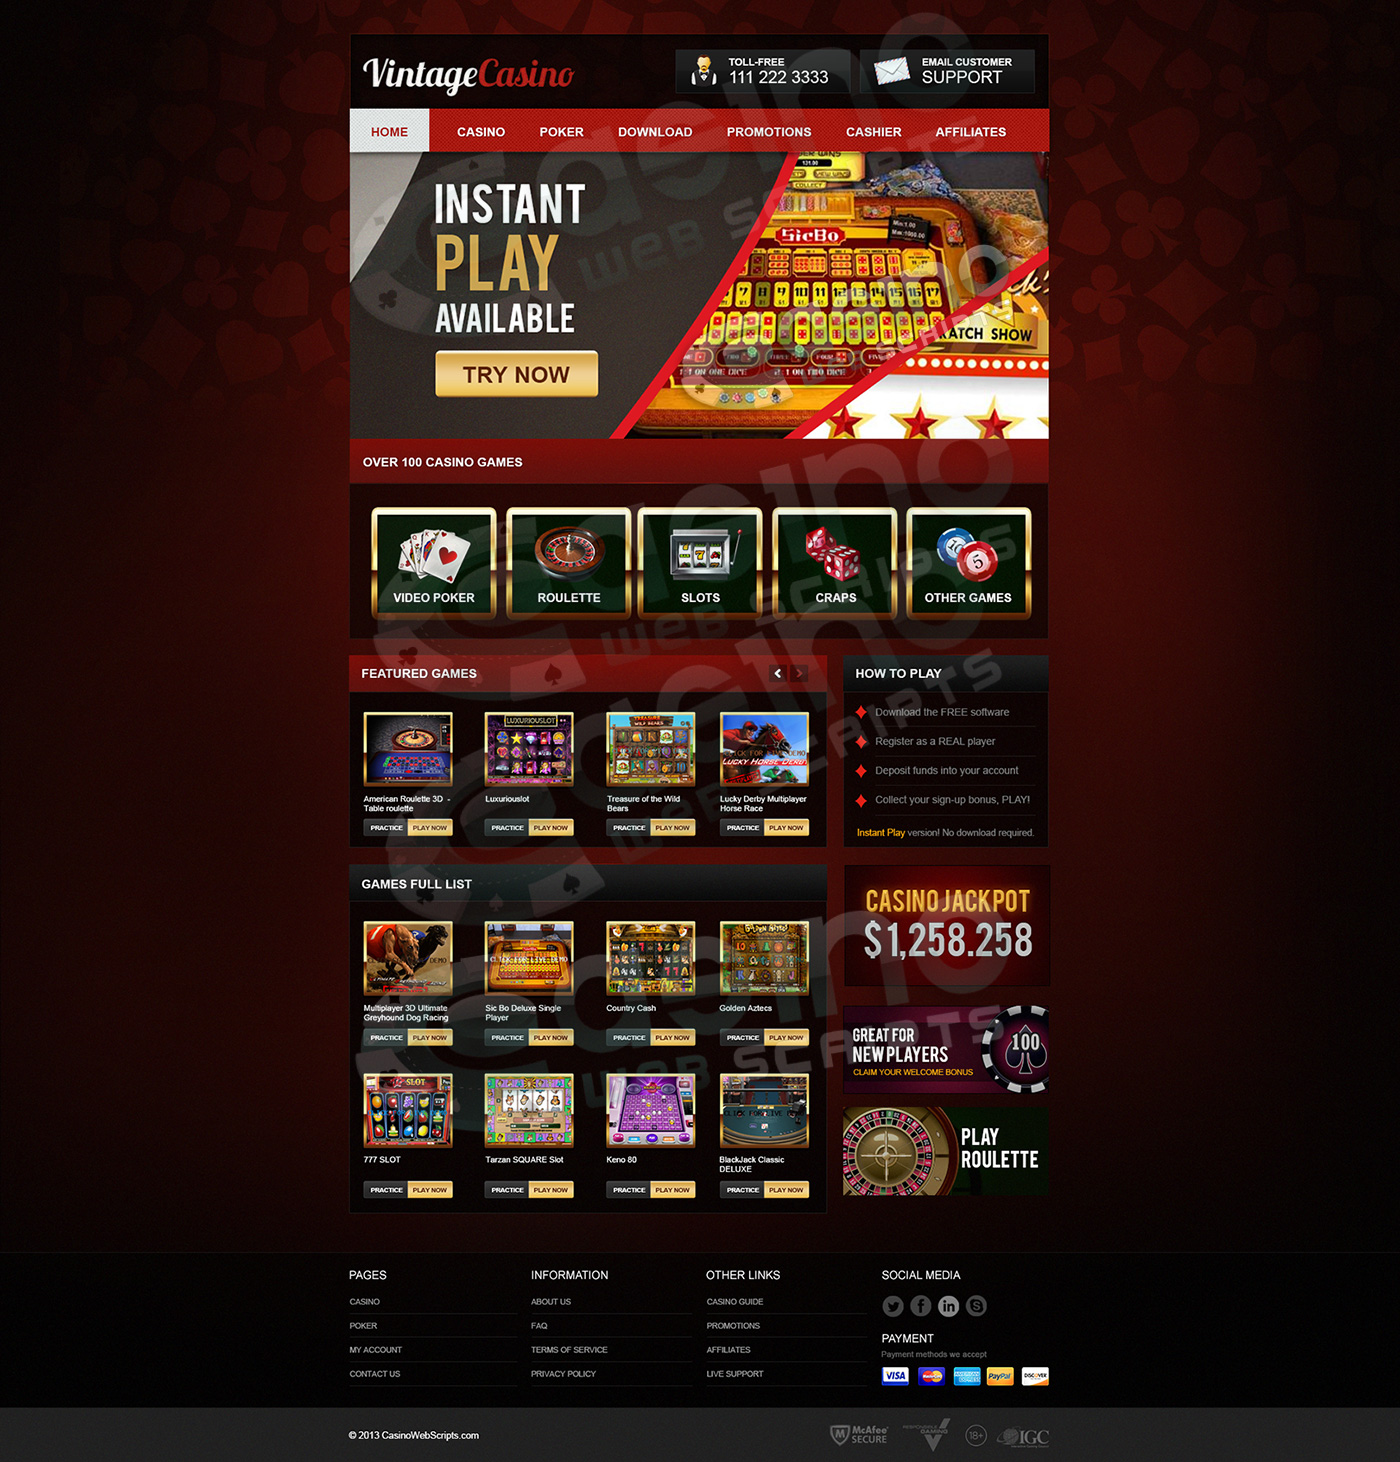 Bonus pokerstars casino web scripts - 880431